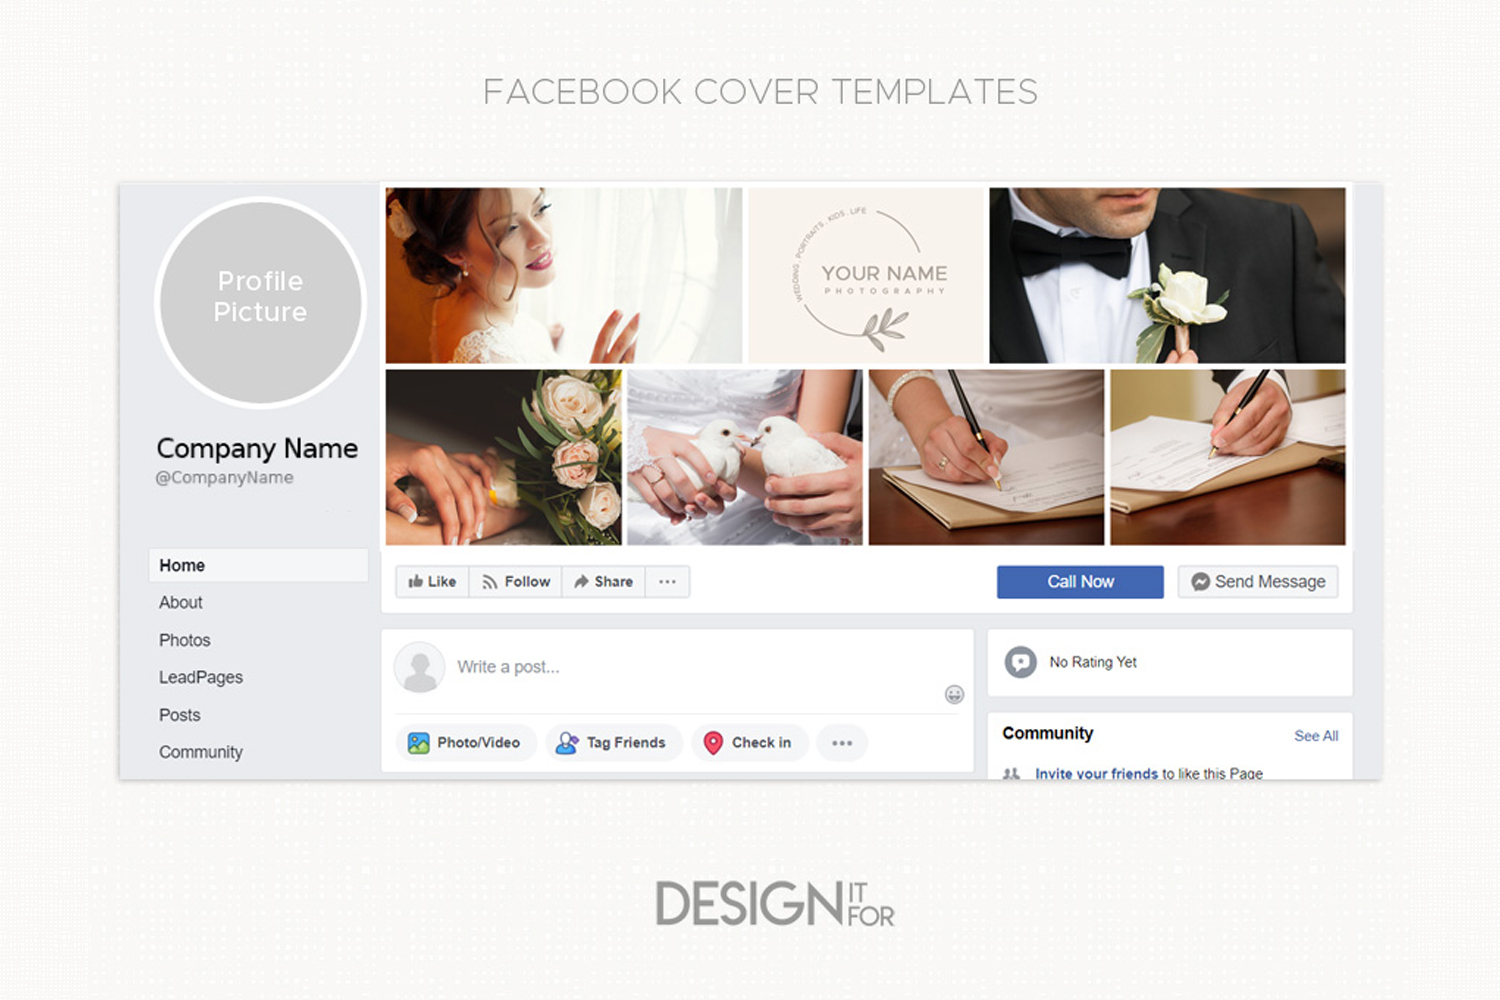 Collage Facebook Cover Template for Photographers example image 2